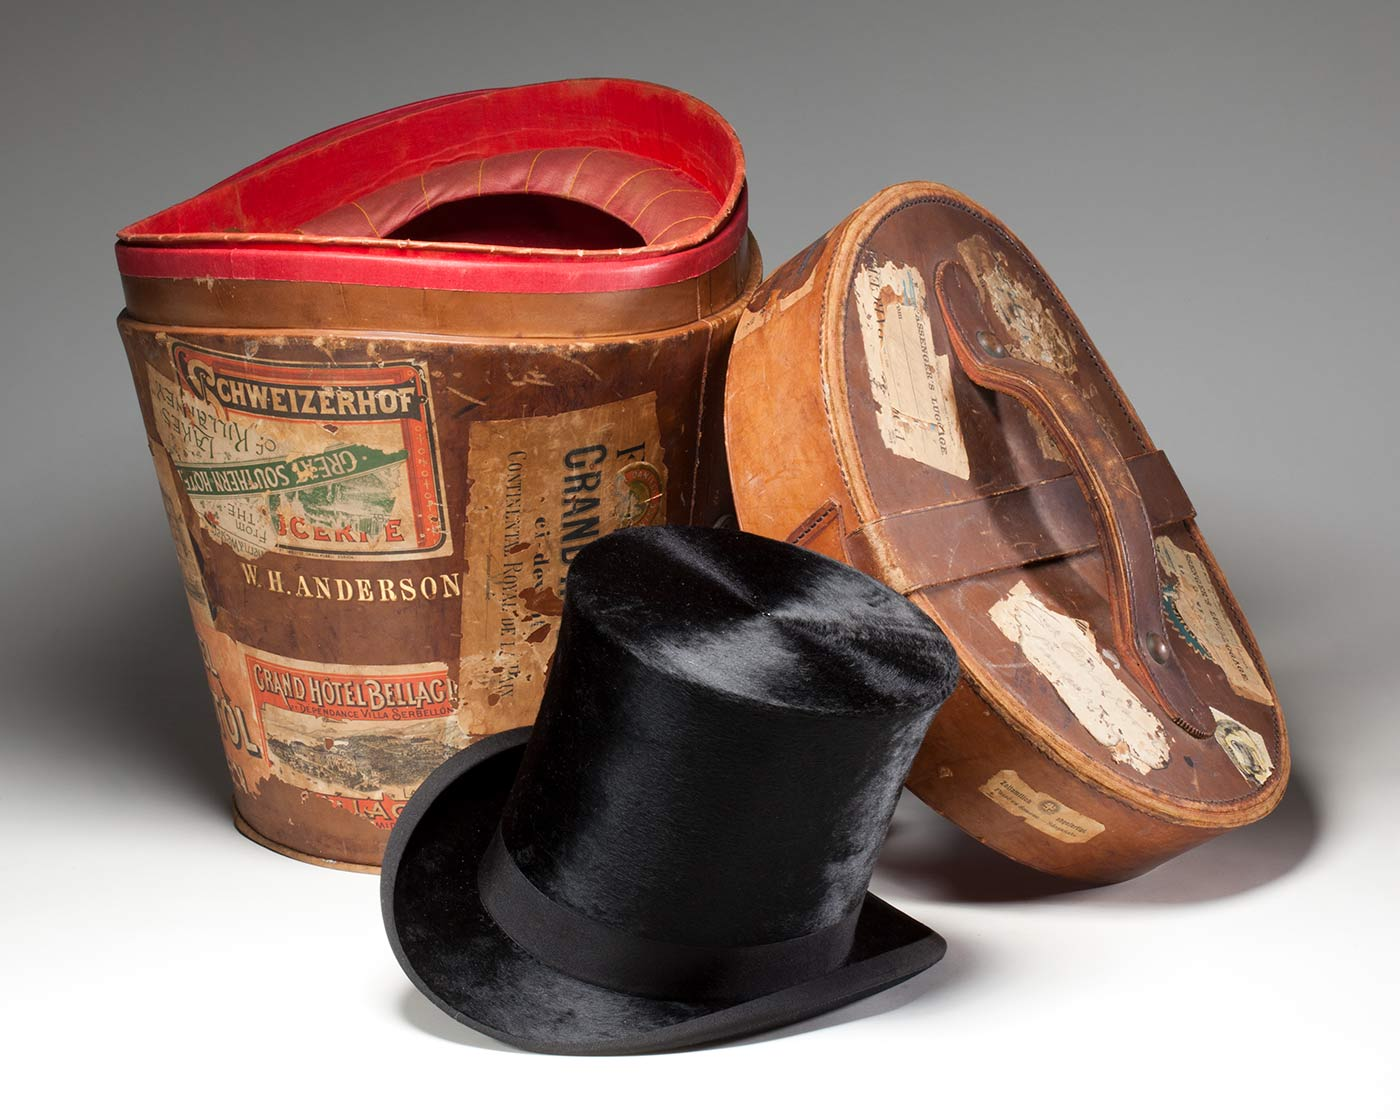 Black top hat made by J Woodrow & Sons, London, with hat box covered in travel stickers, featuring the inscription 'W. H. ANDERSON'.